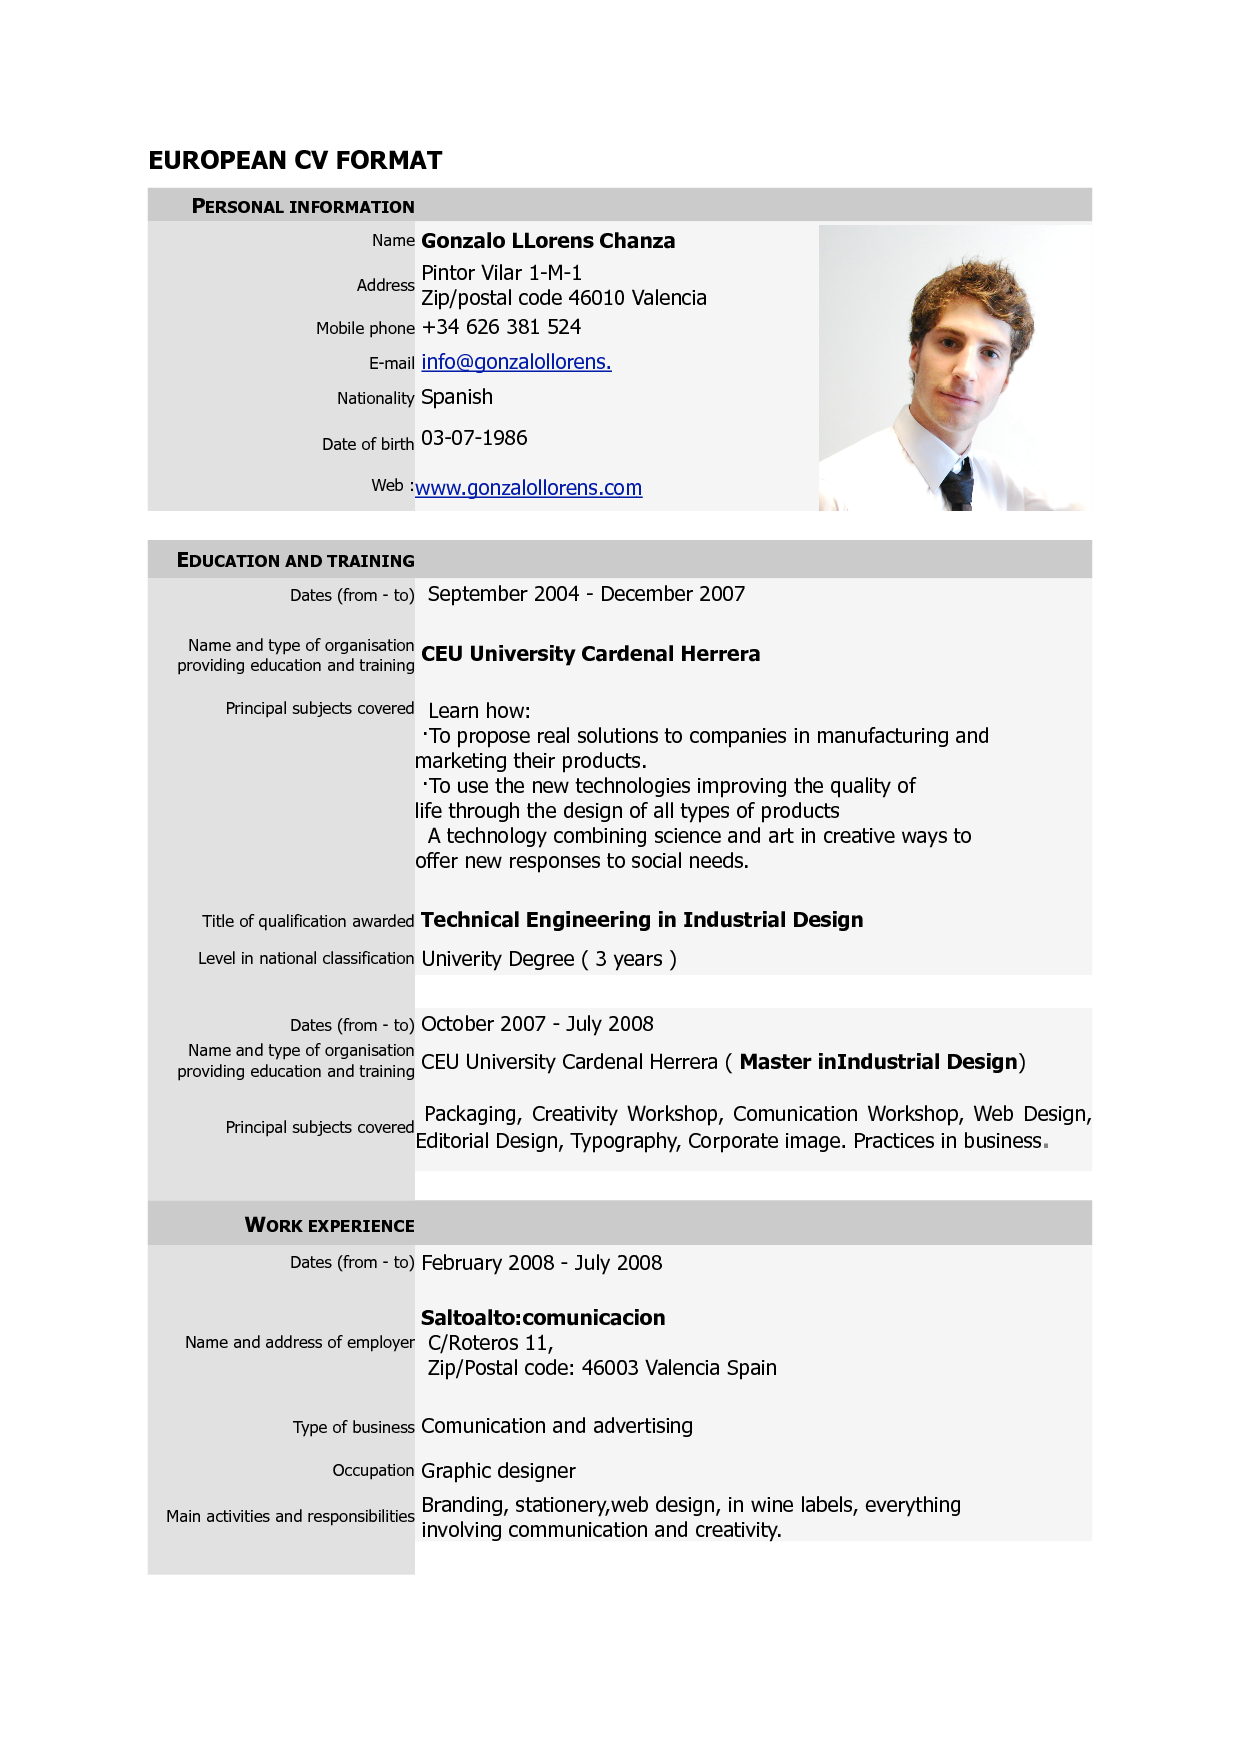 download sample cv - Yeni.mescale.co